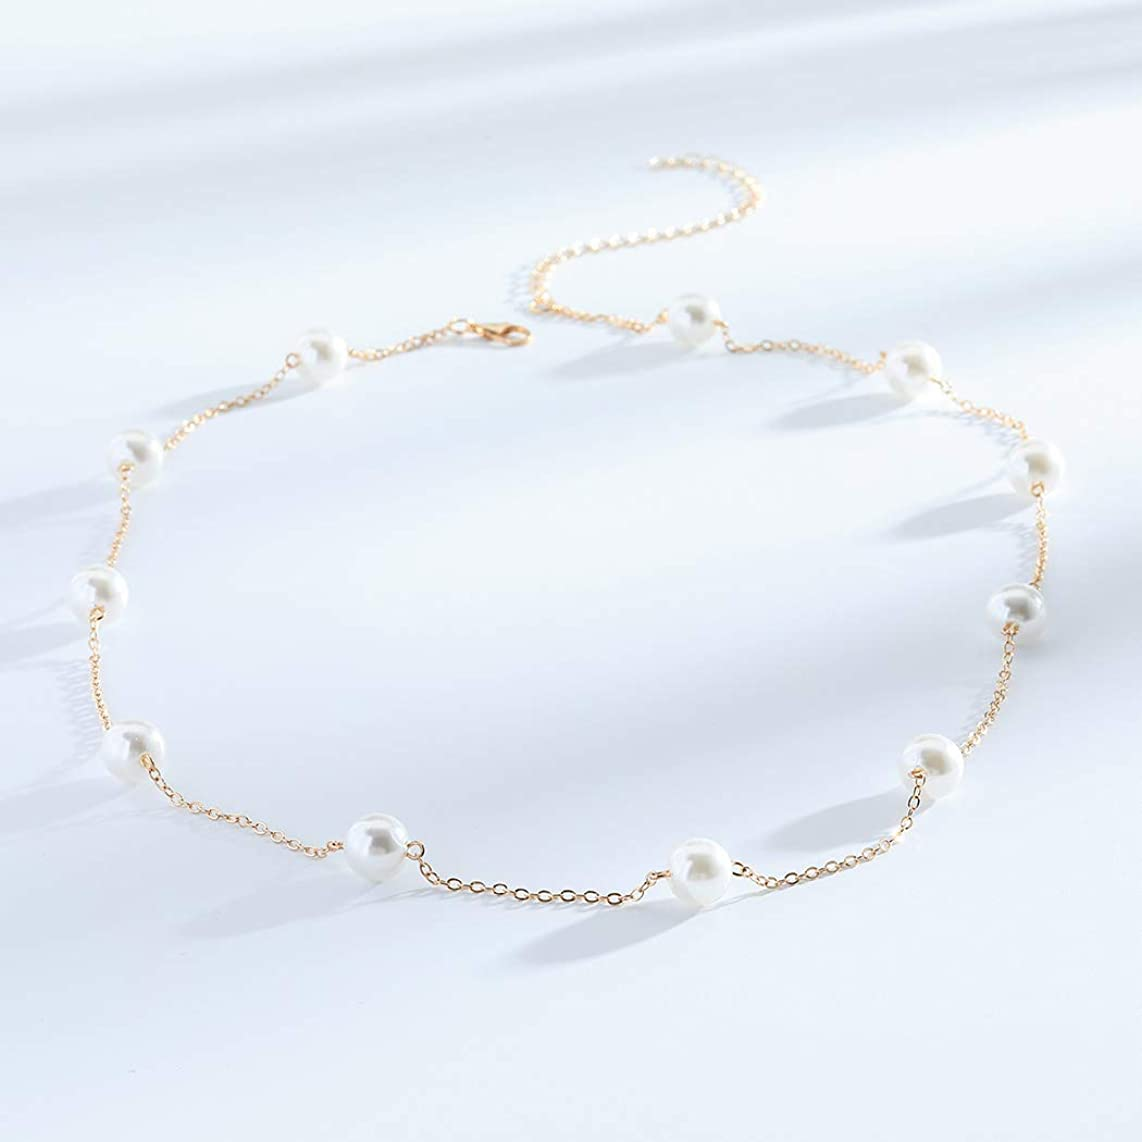 FDesigner Pearl Choker Necklaces Long Pendant Necklace Chain Decorative Jewelry for Women and Girls